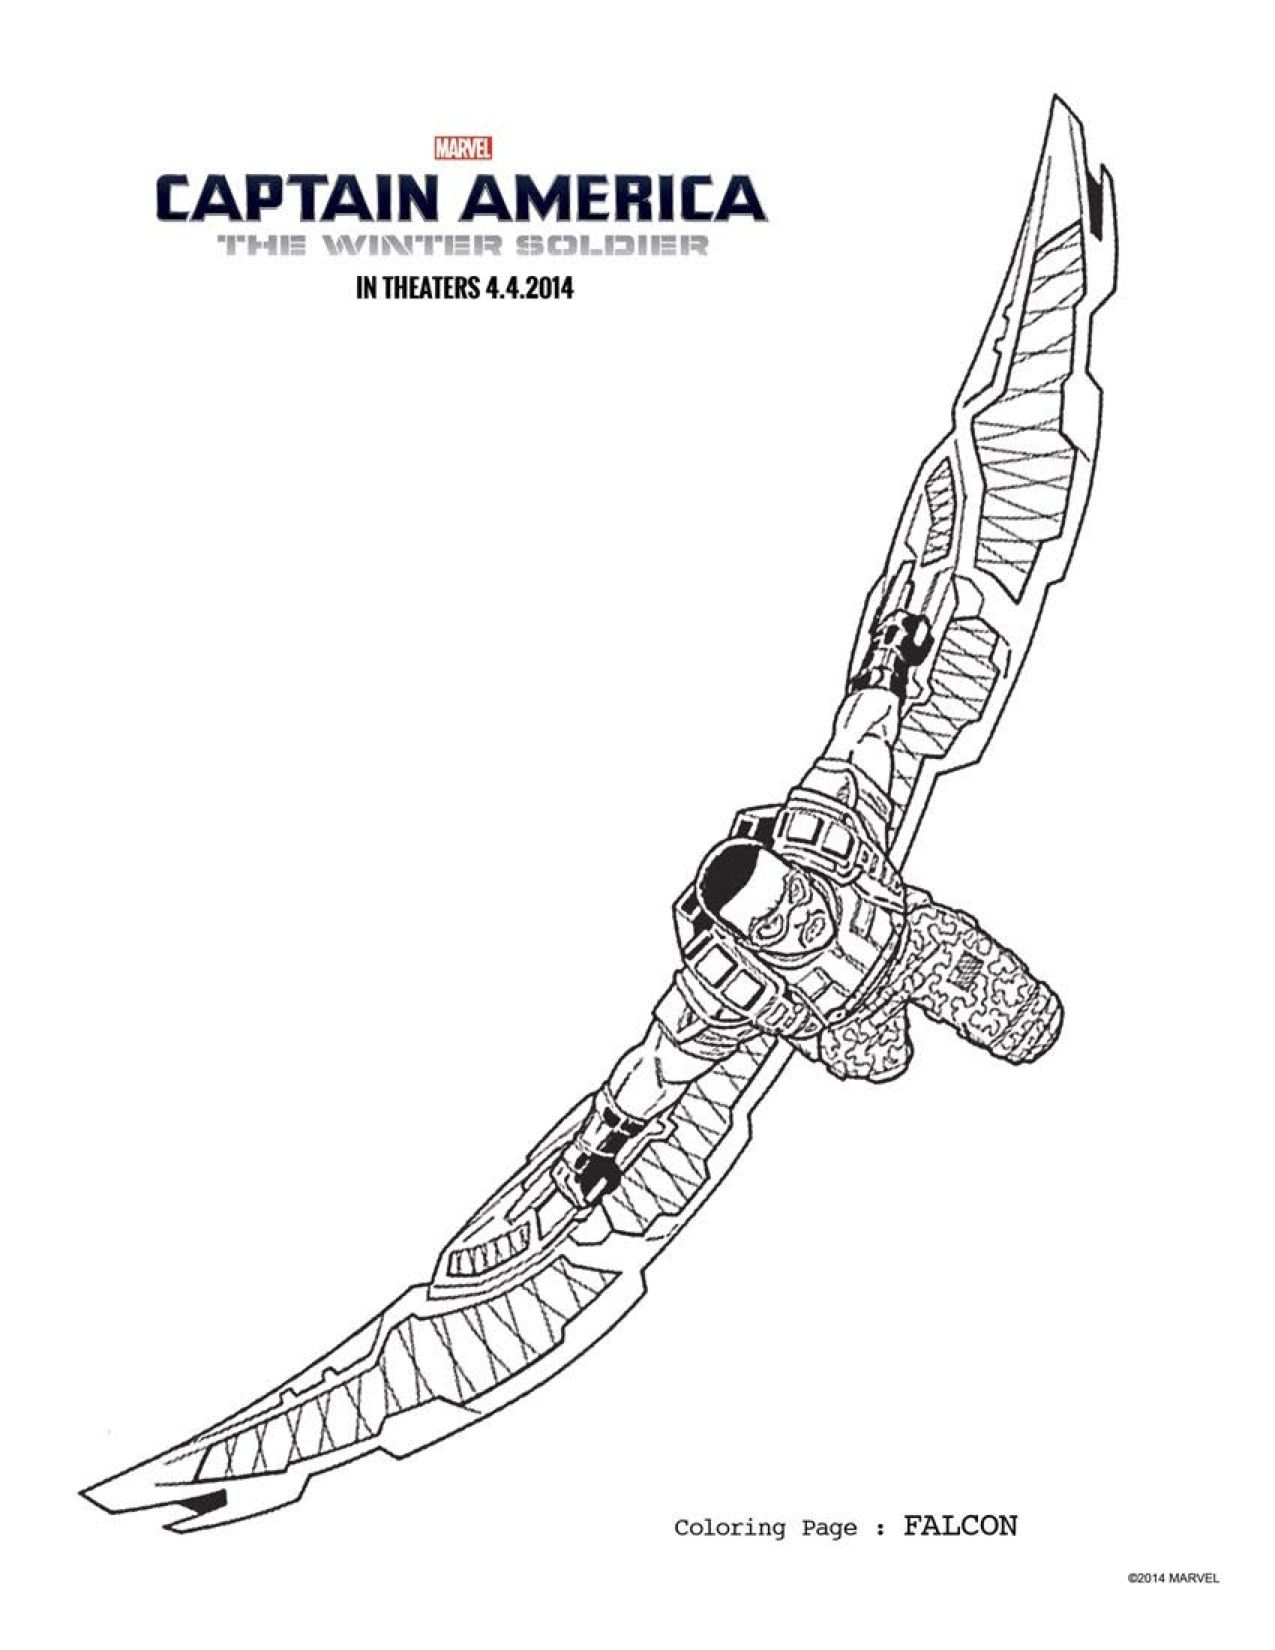 captain america winter soldier coloring pages - 5 captain america the winter soldier coloring sheets to